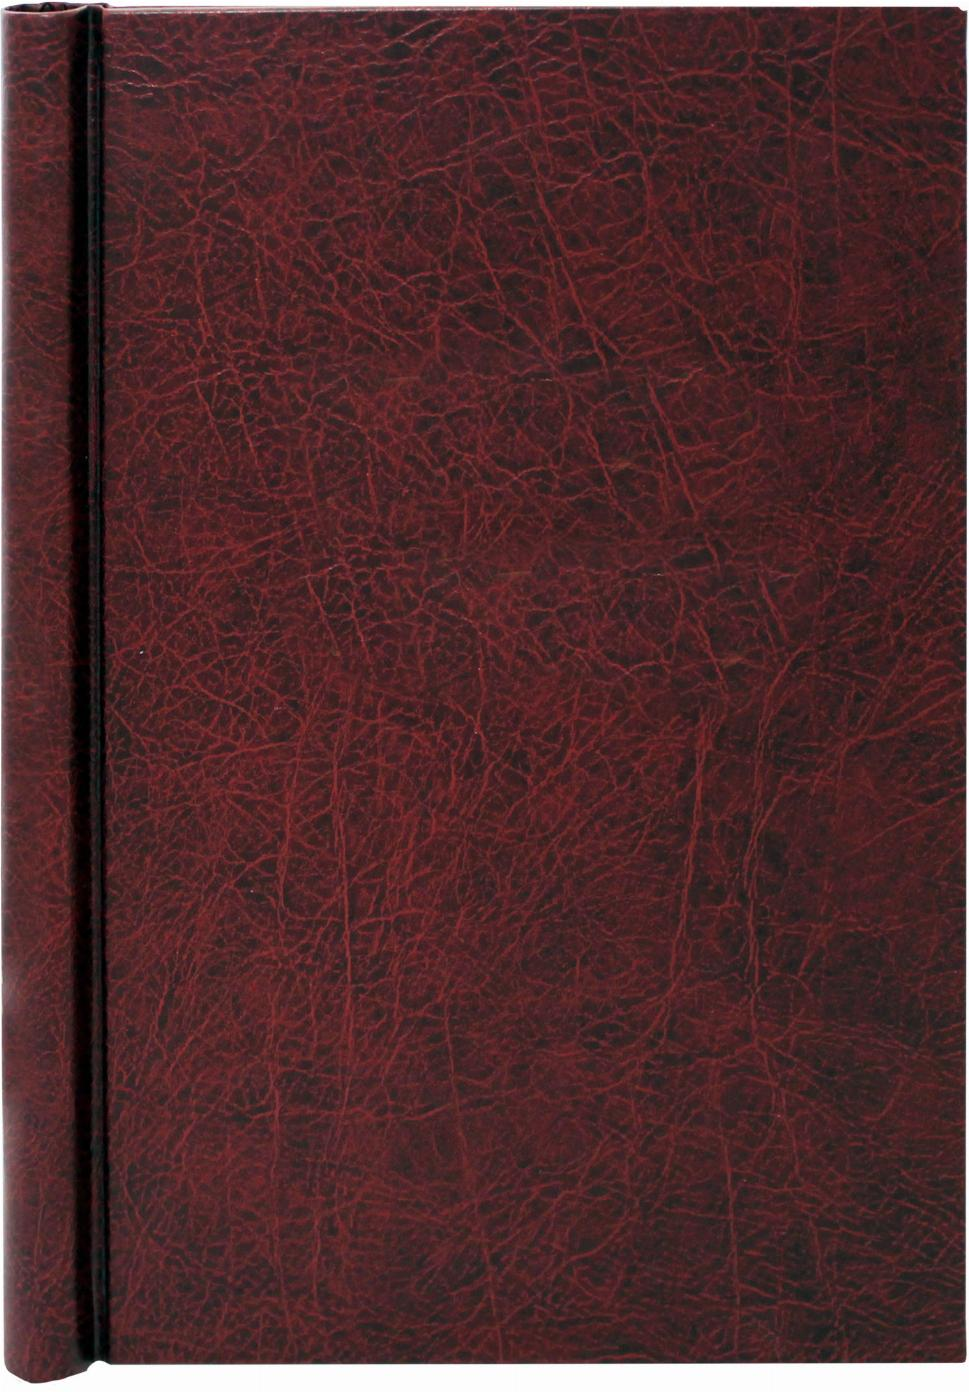 A4 Burgundy Leather Effect Family History Springback Binder - Untitled